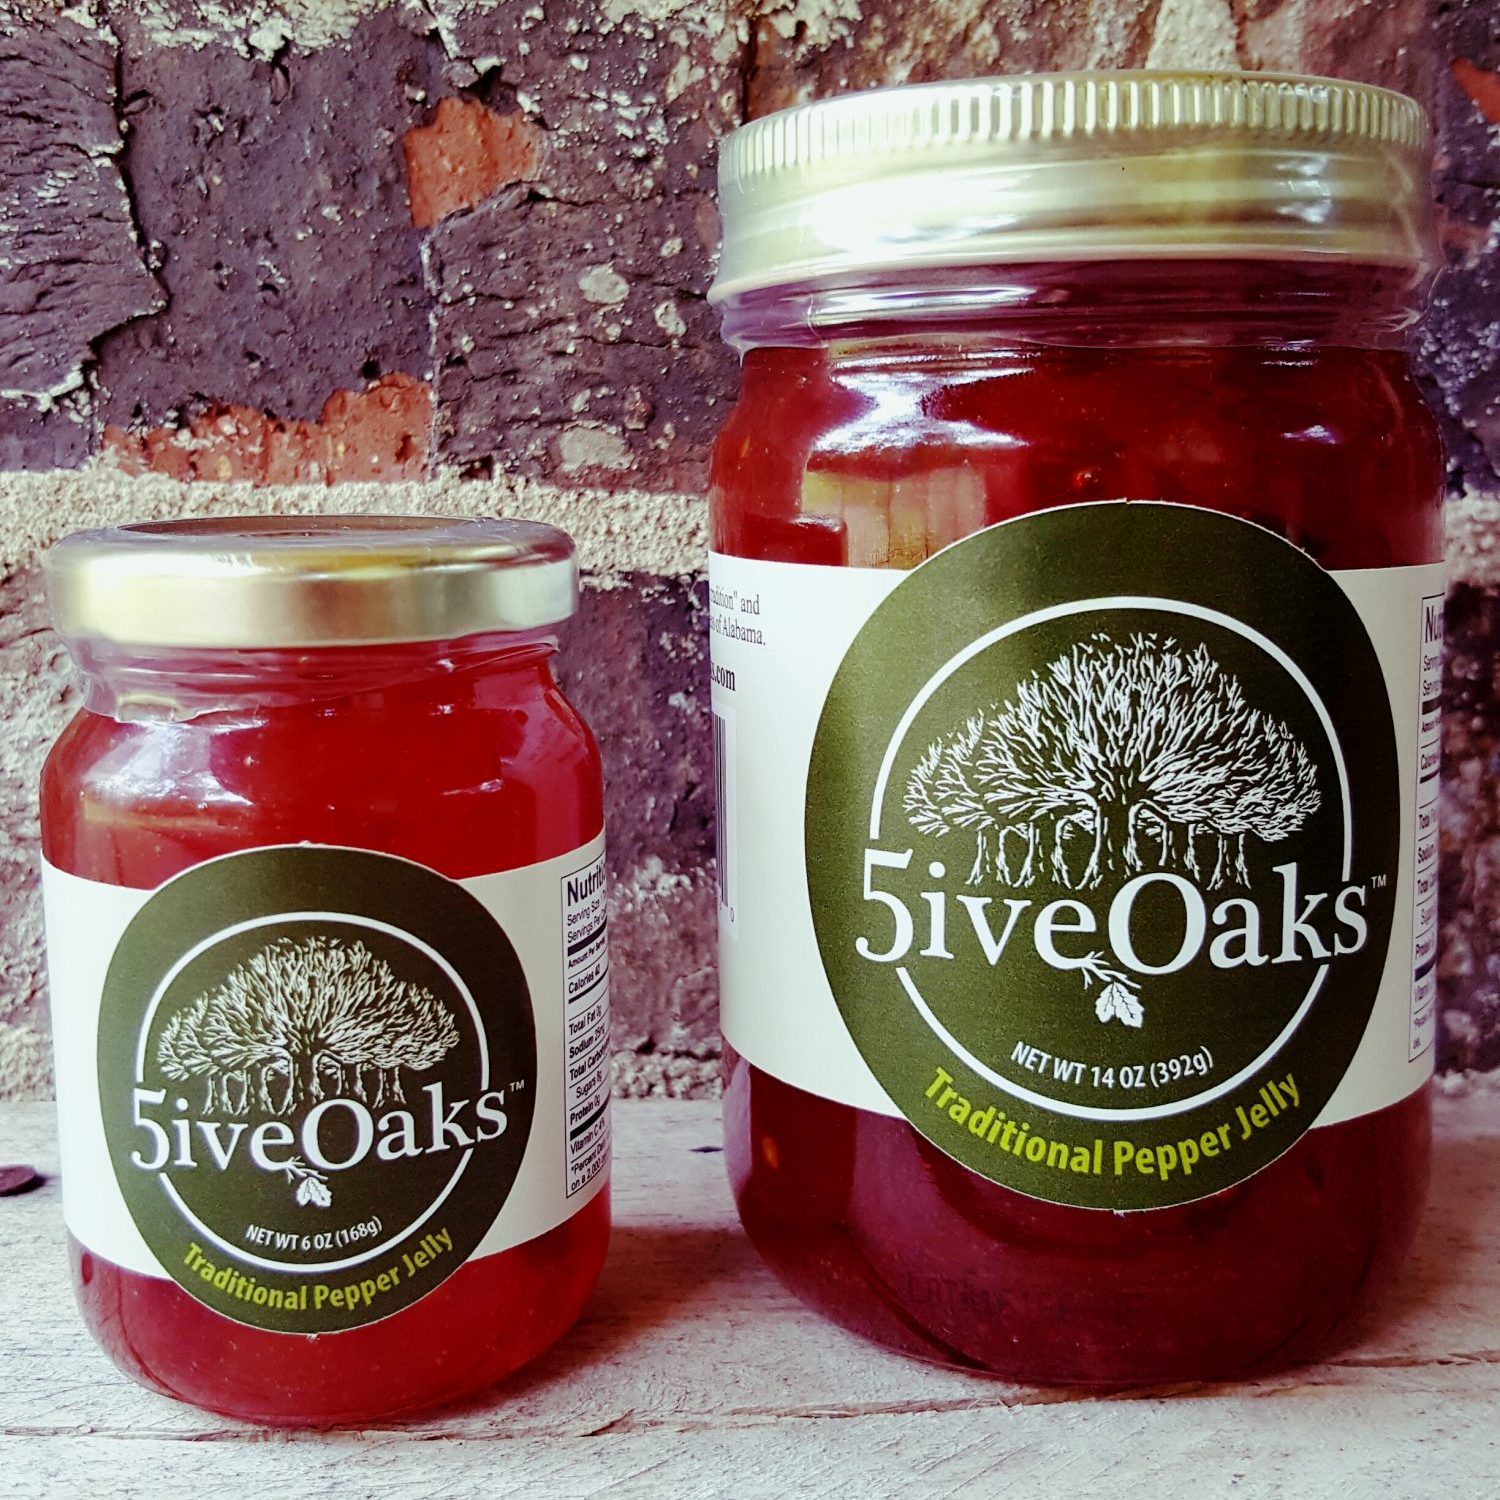 5ive Oaks Pepper Jelly